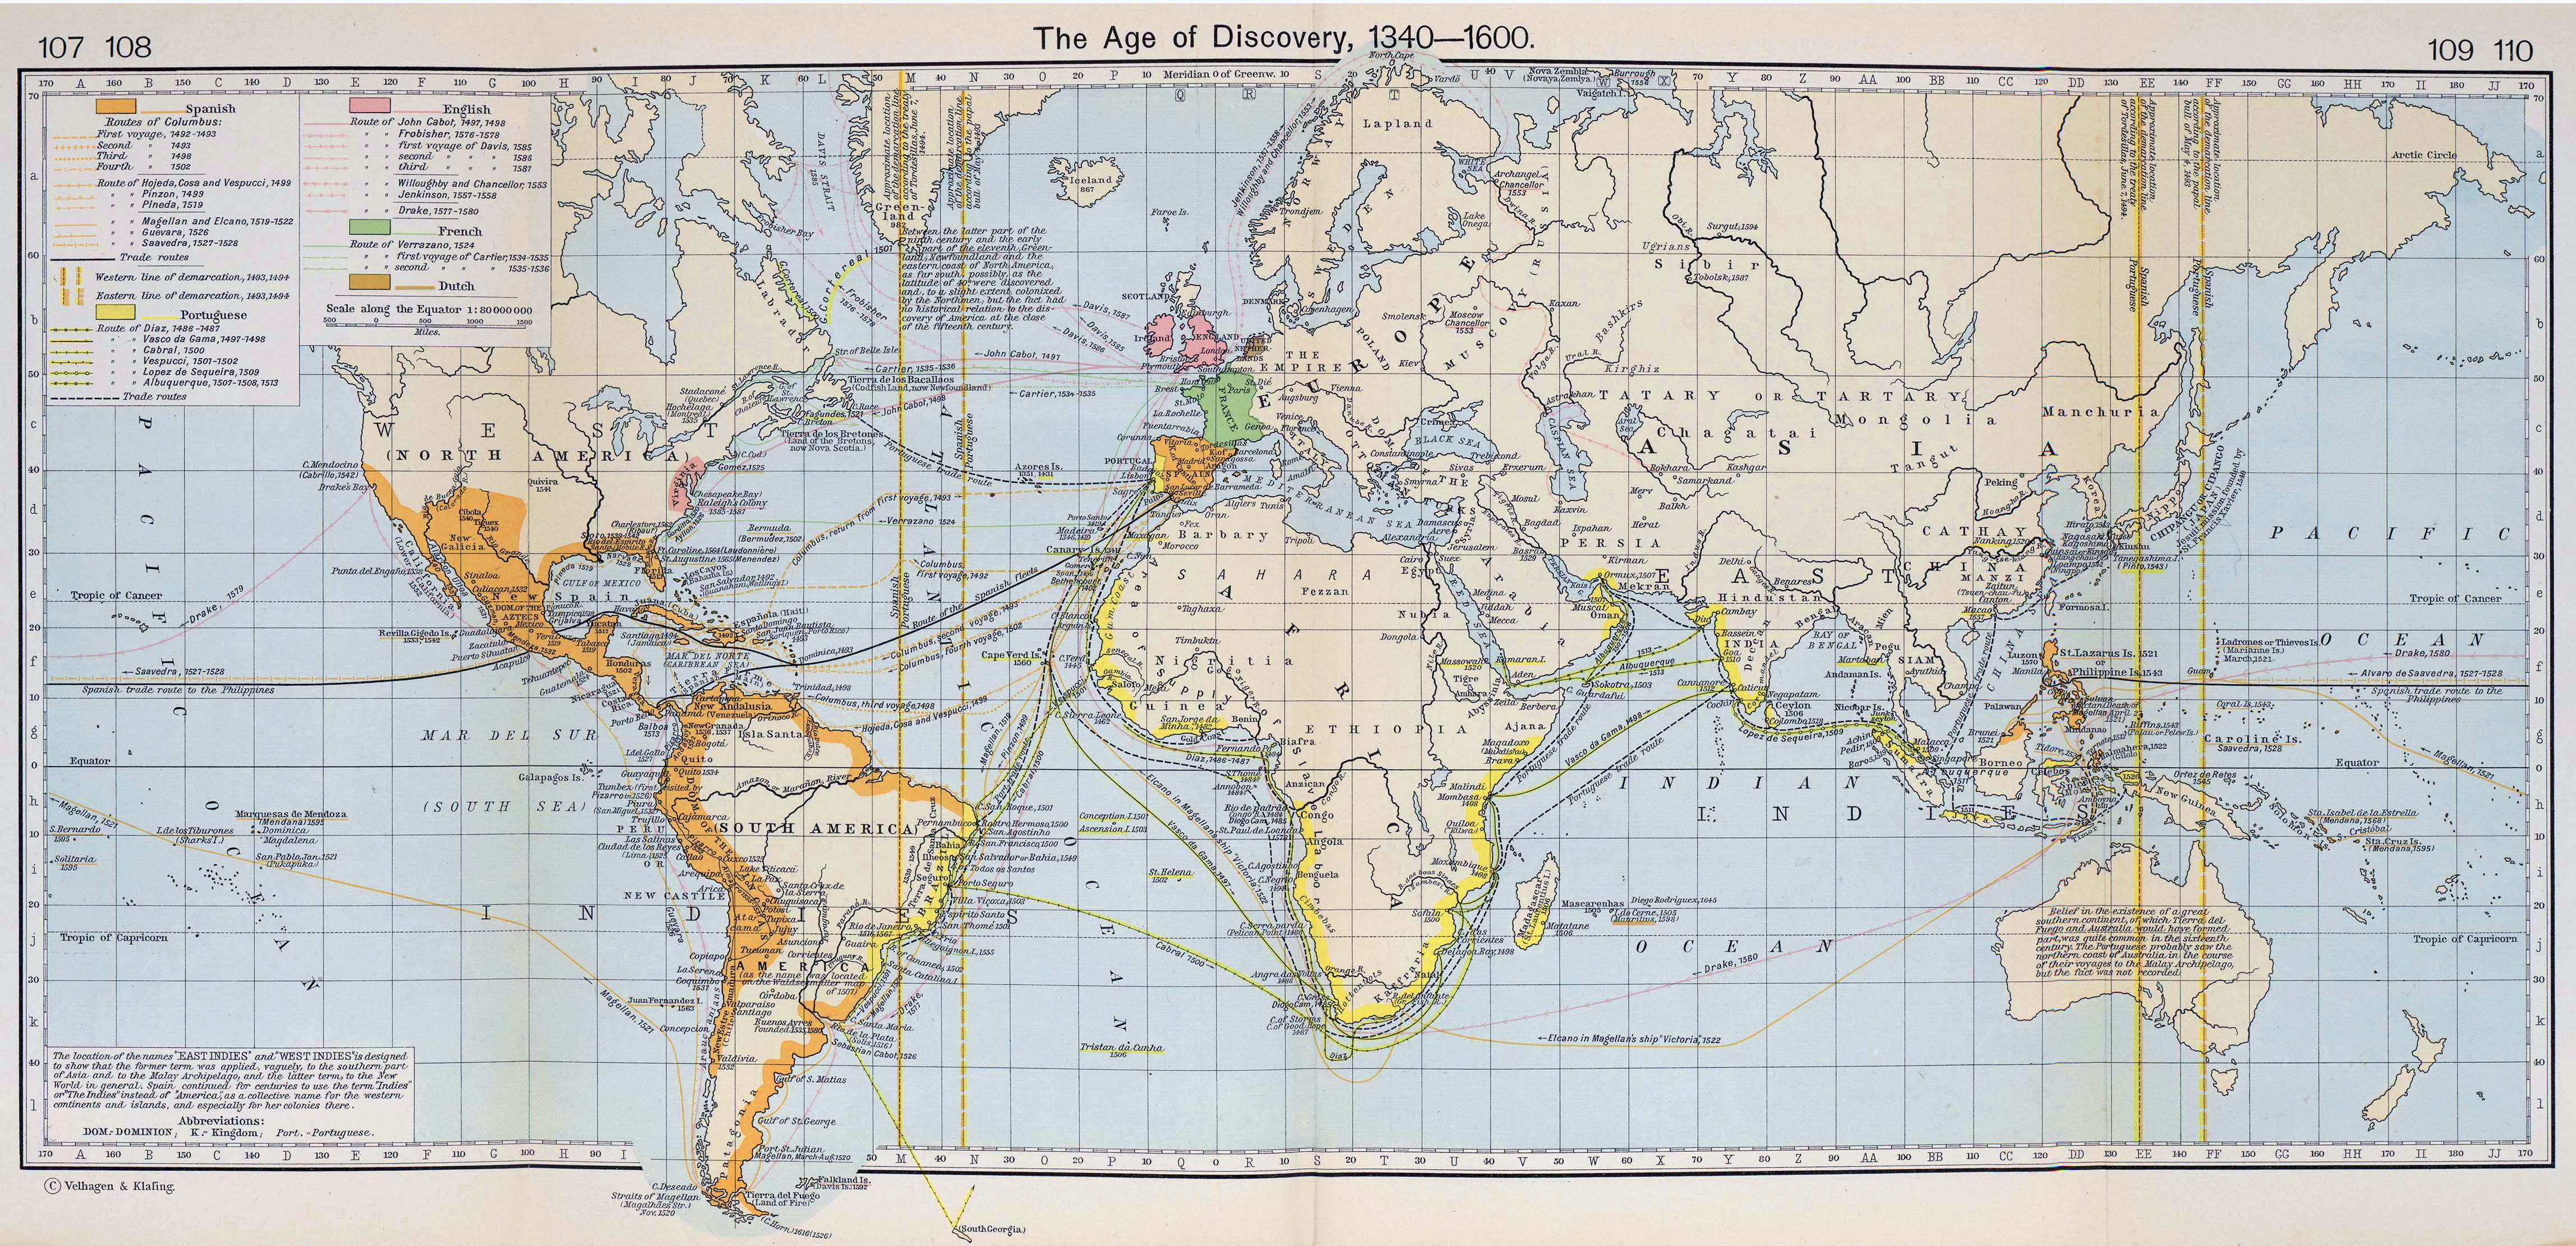 World map 1340 1600 the age of discovery maps and globes world map 1340 1600 the age of discovery gumiabroncs Images